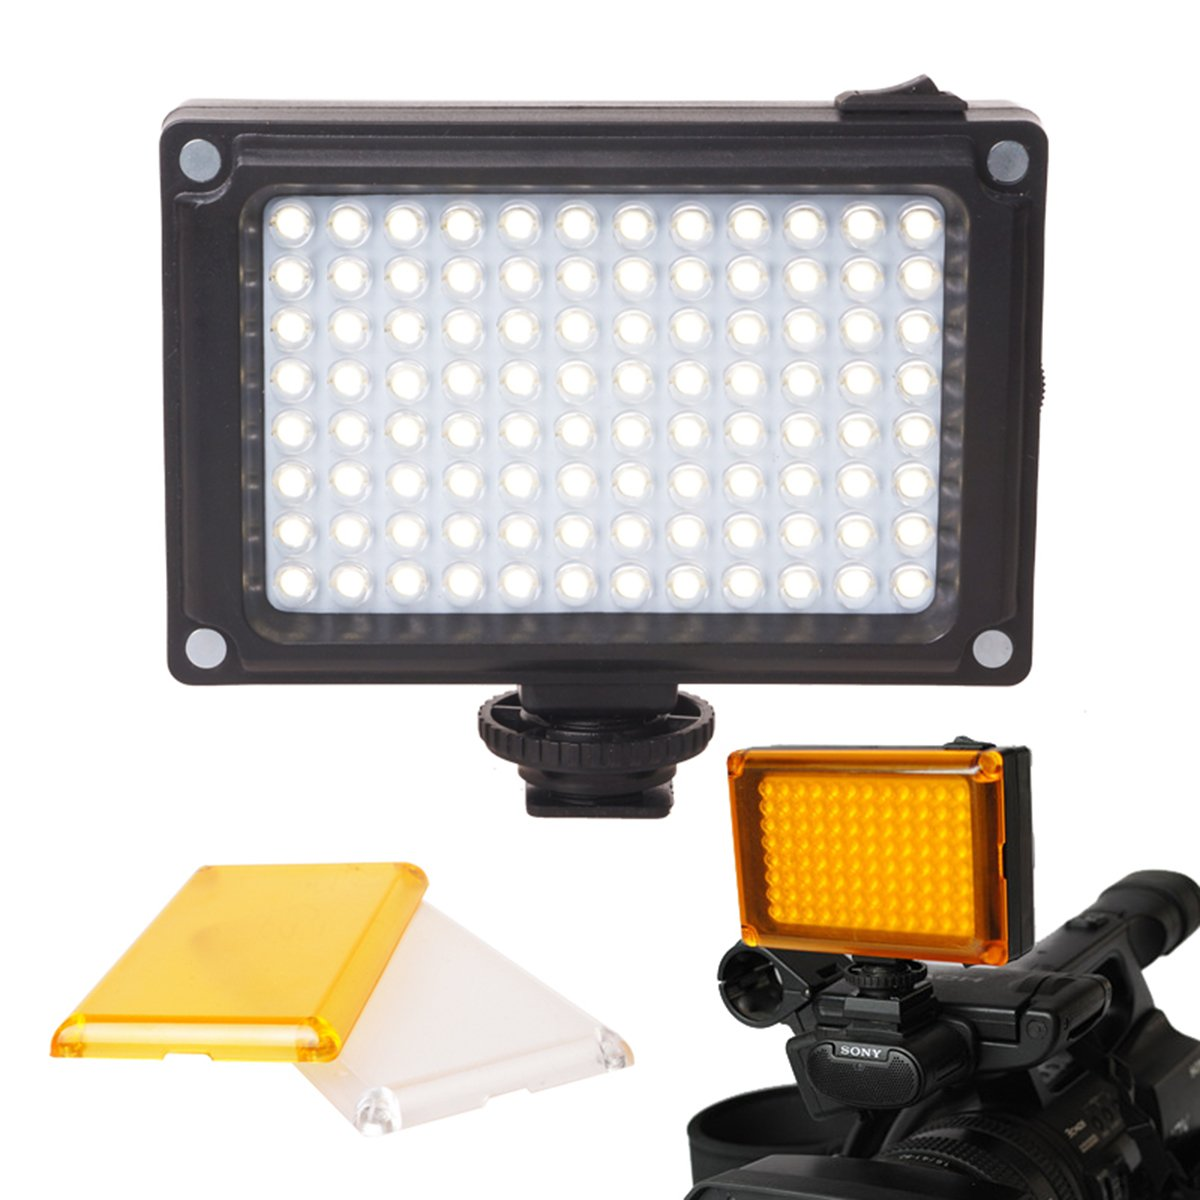 Rechargeble 96 LED Video Light, Ulanzi Pocket Mini on Camera Led Light with 2500mAh Battery and Magnet Filters for Sony Panasonic Canon Nikon DSLR Camcorder